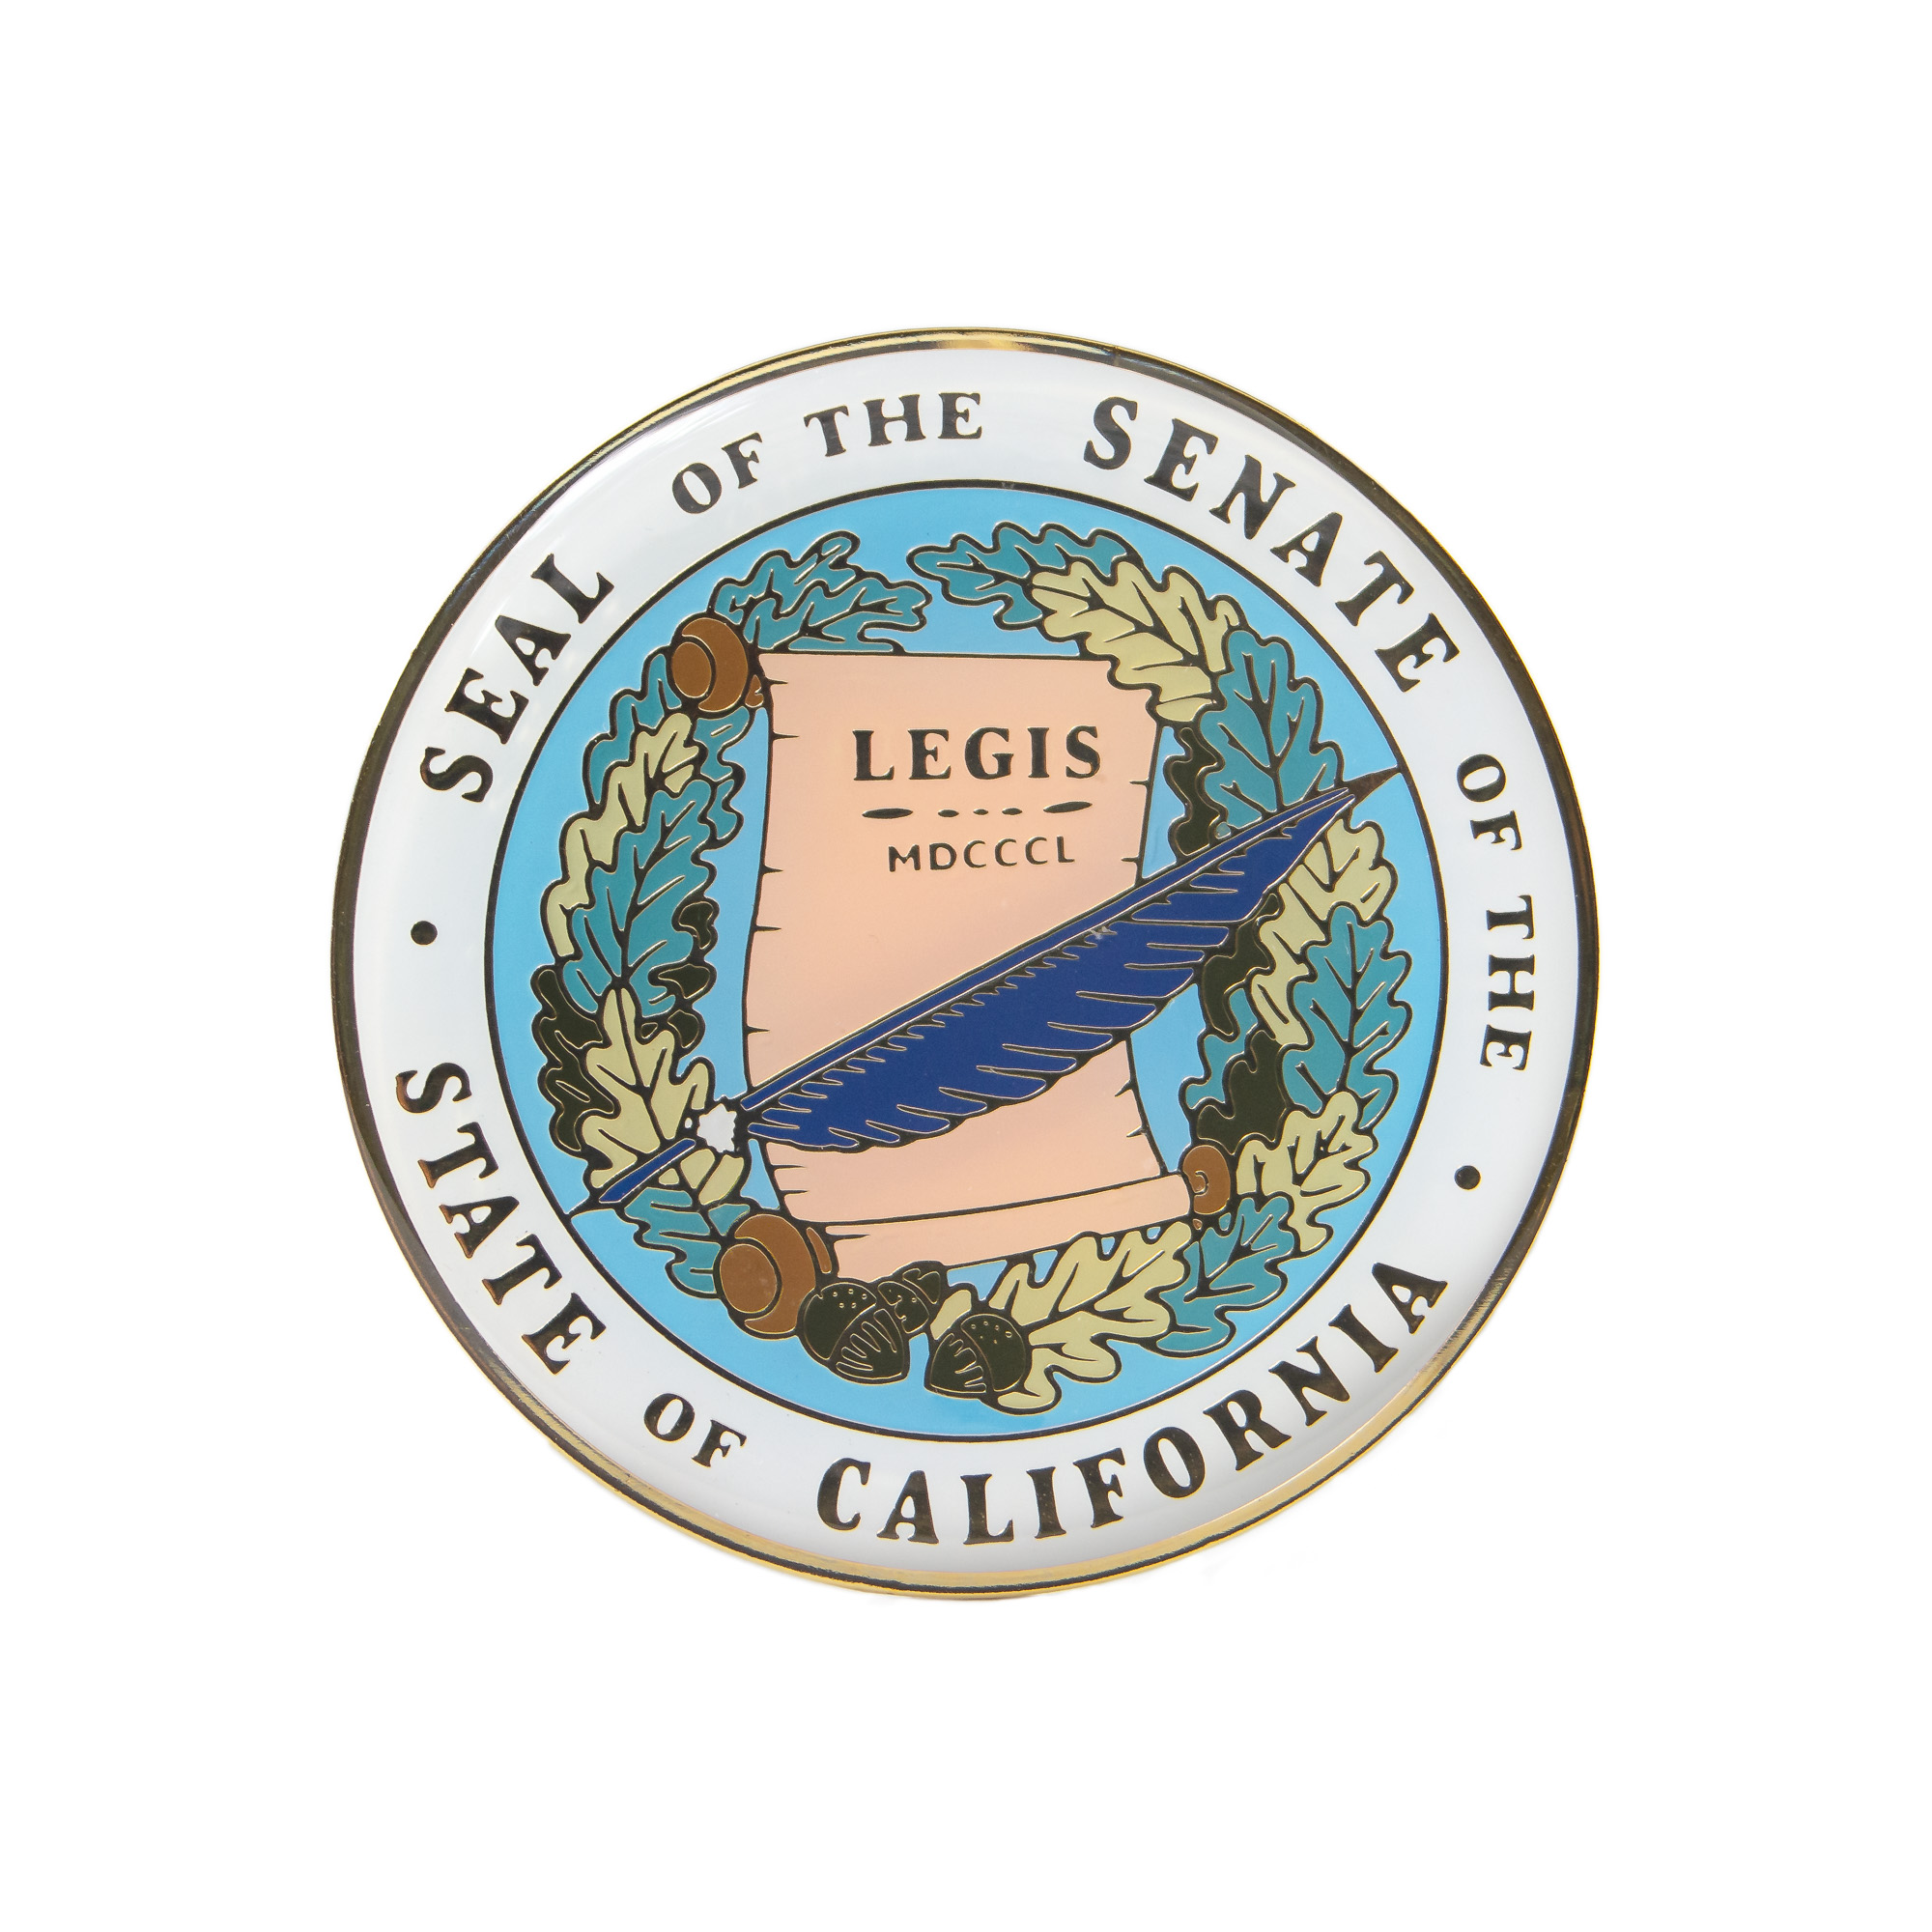 The State Senate Seal